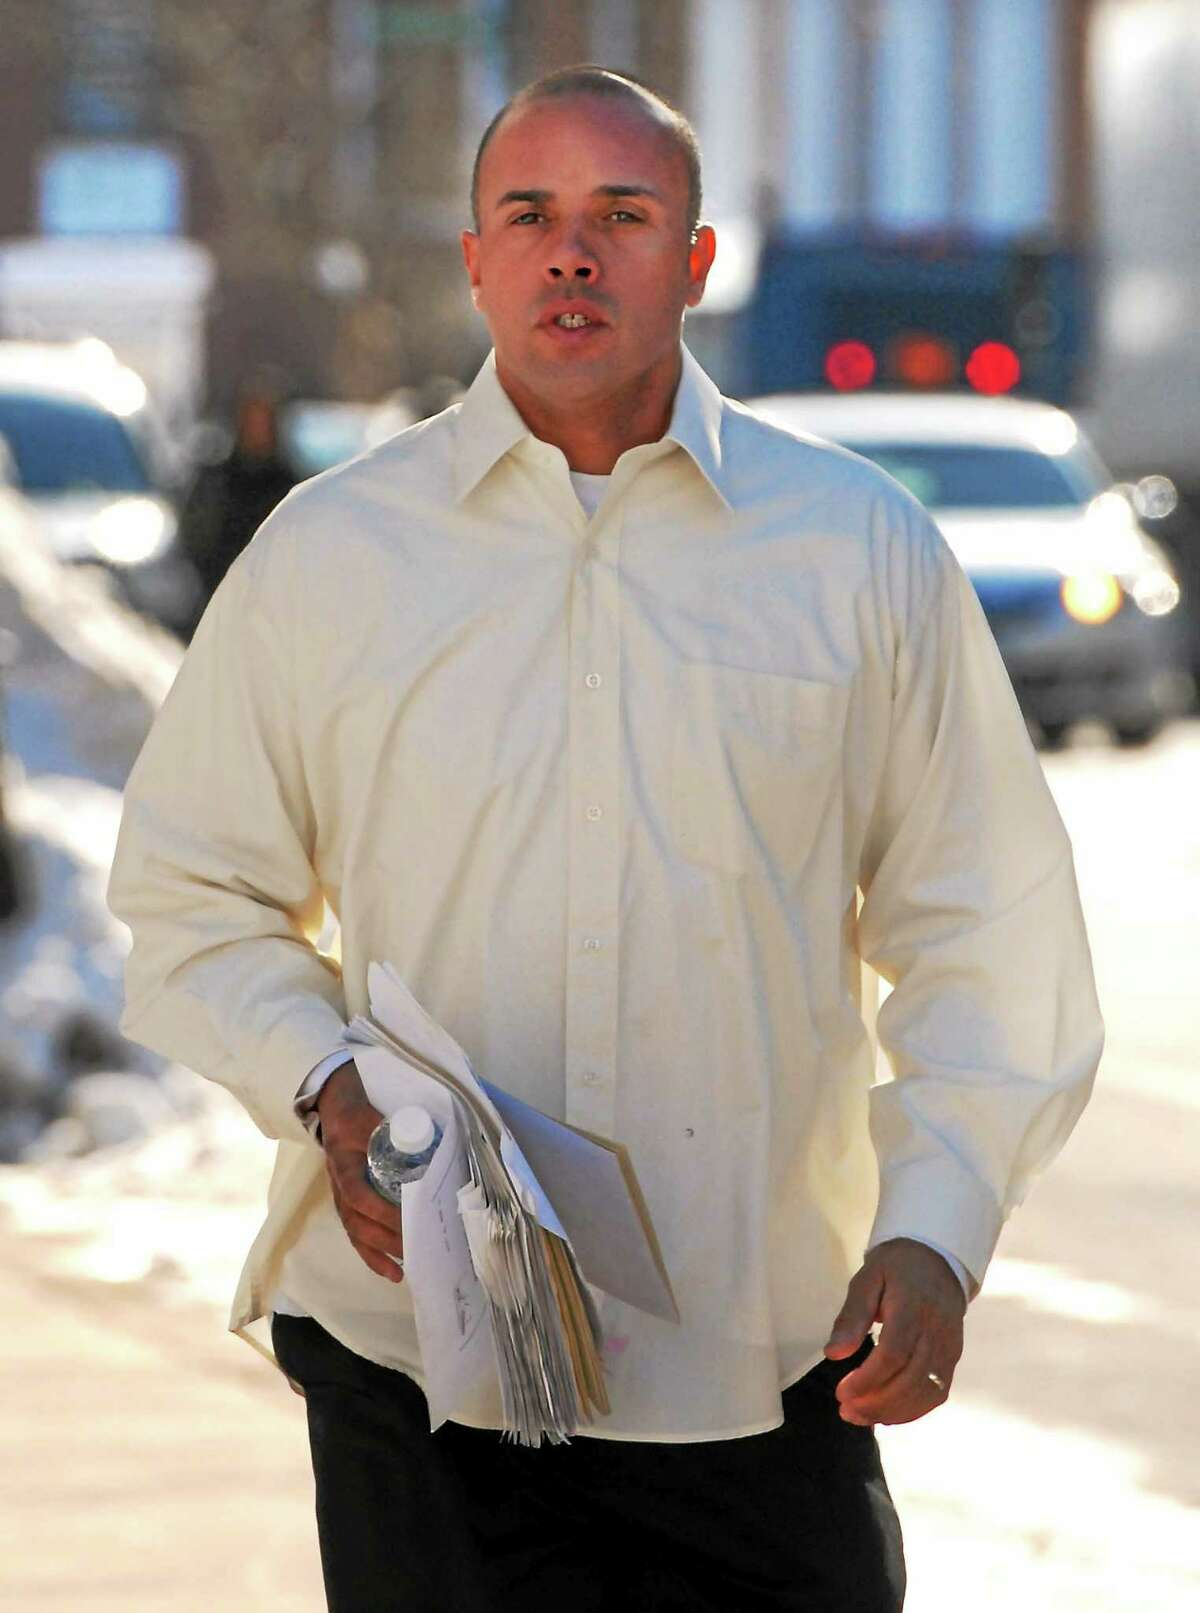 Angelo Reyes of New Haven runs to a hearing at Federal Court in Hartford in 2011.